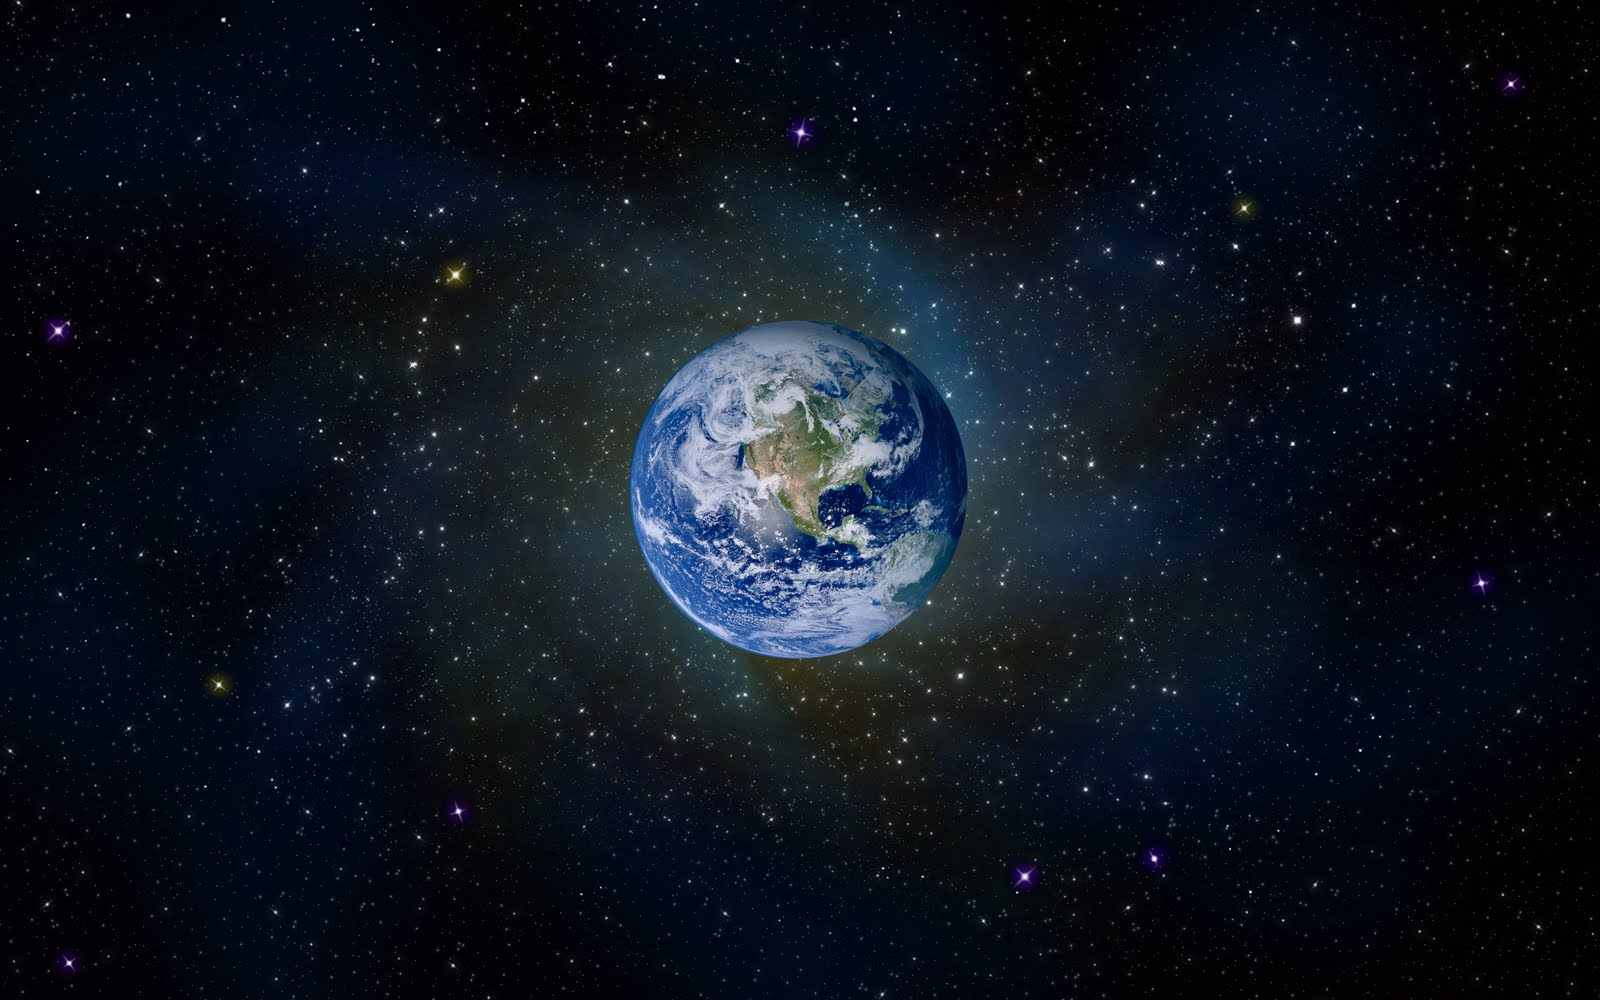 All The Latest And Exclusive Hd Wallpapers From Around The World Planet Earth Space Hd And Desktop Wallpaper